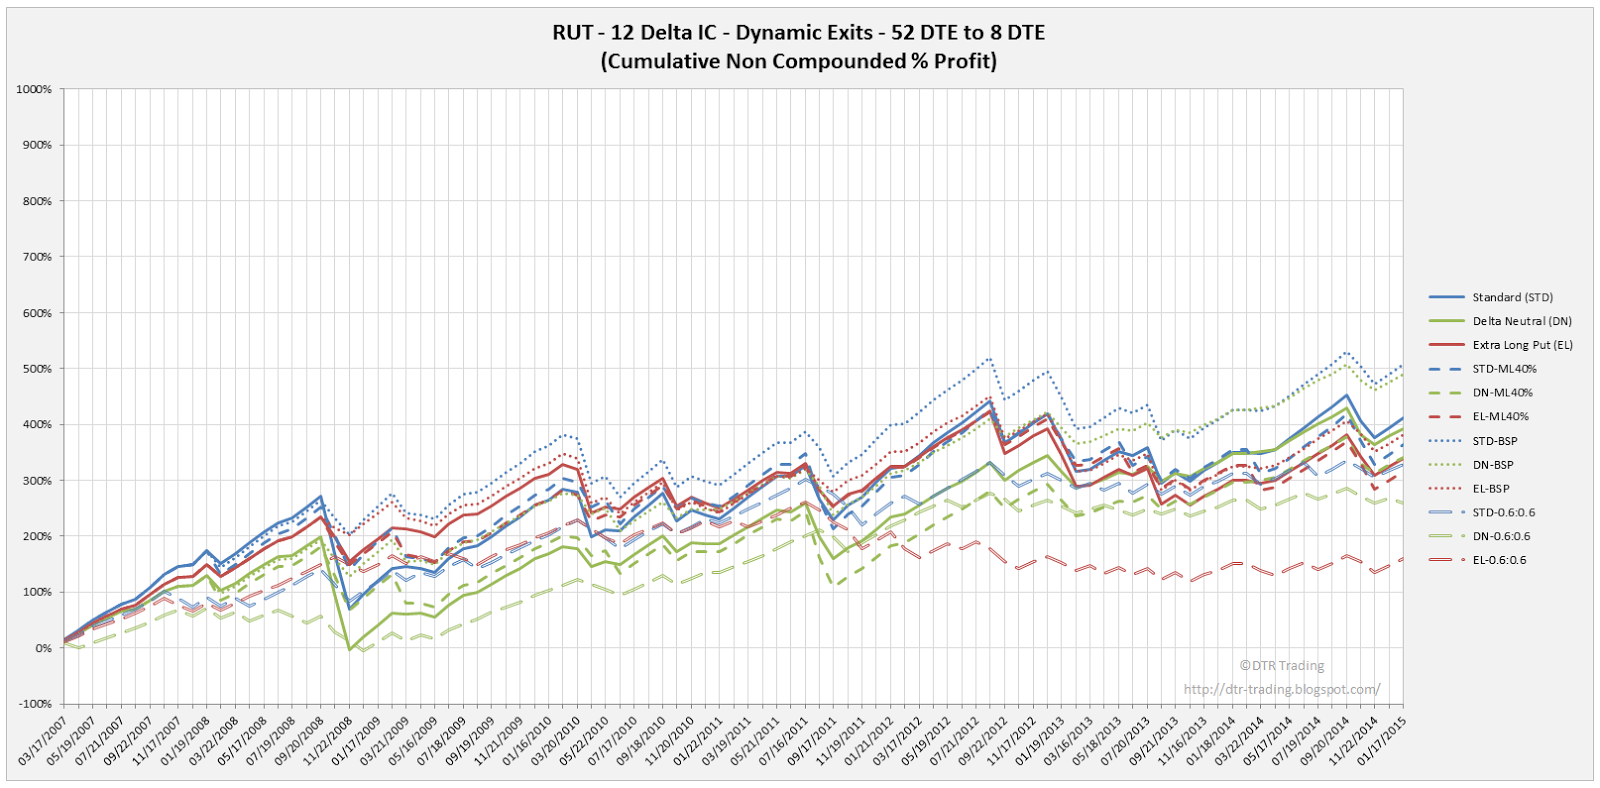 Iron Condor Dynamic Exit Equity Curves RUT 52 DTE 12 Delta All Versions